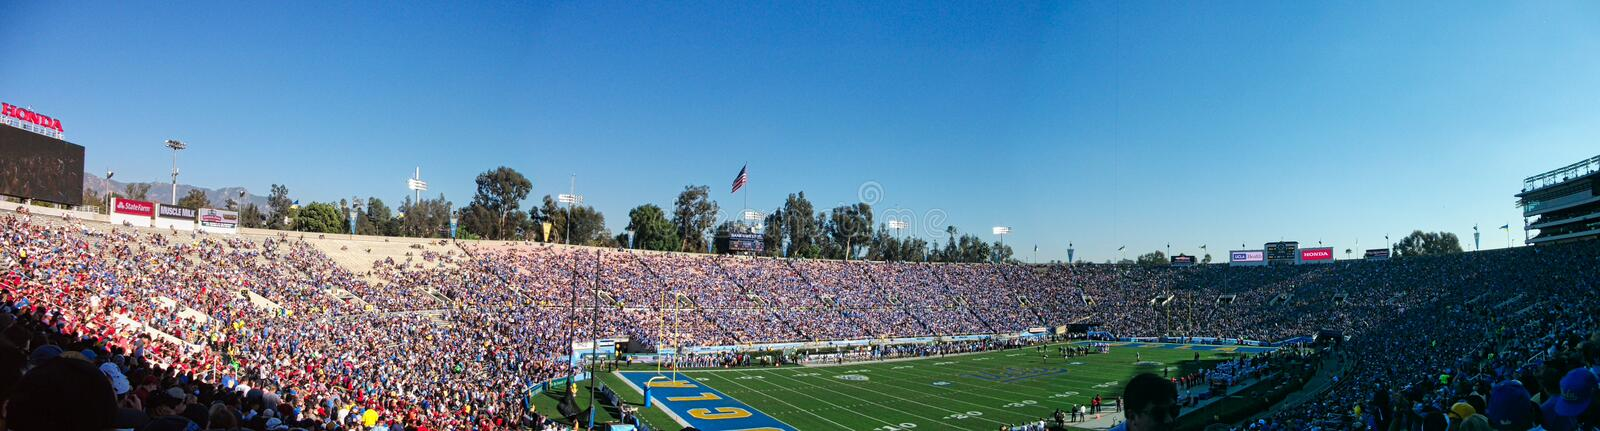 panorama picture from a full stadium stock photography